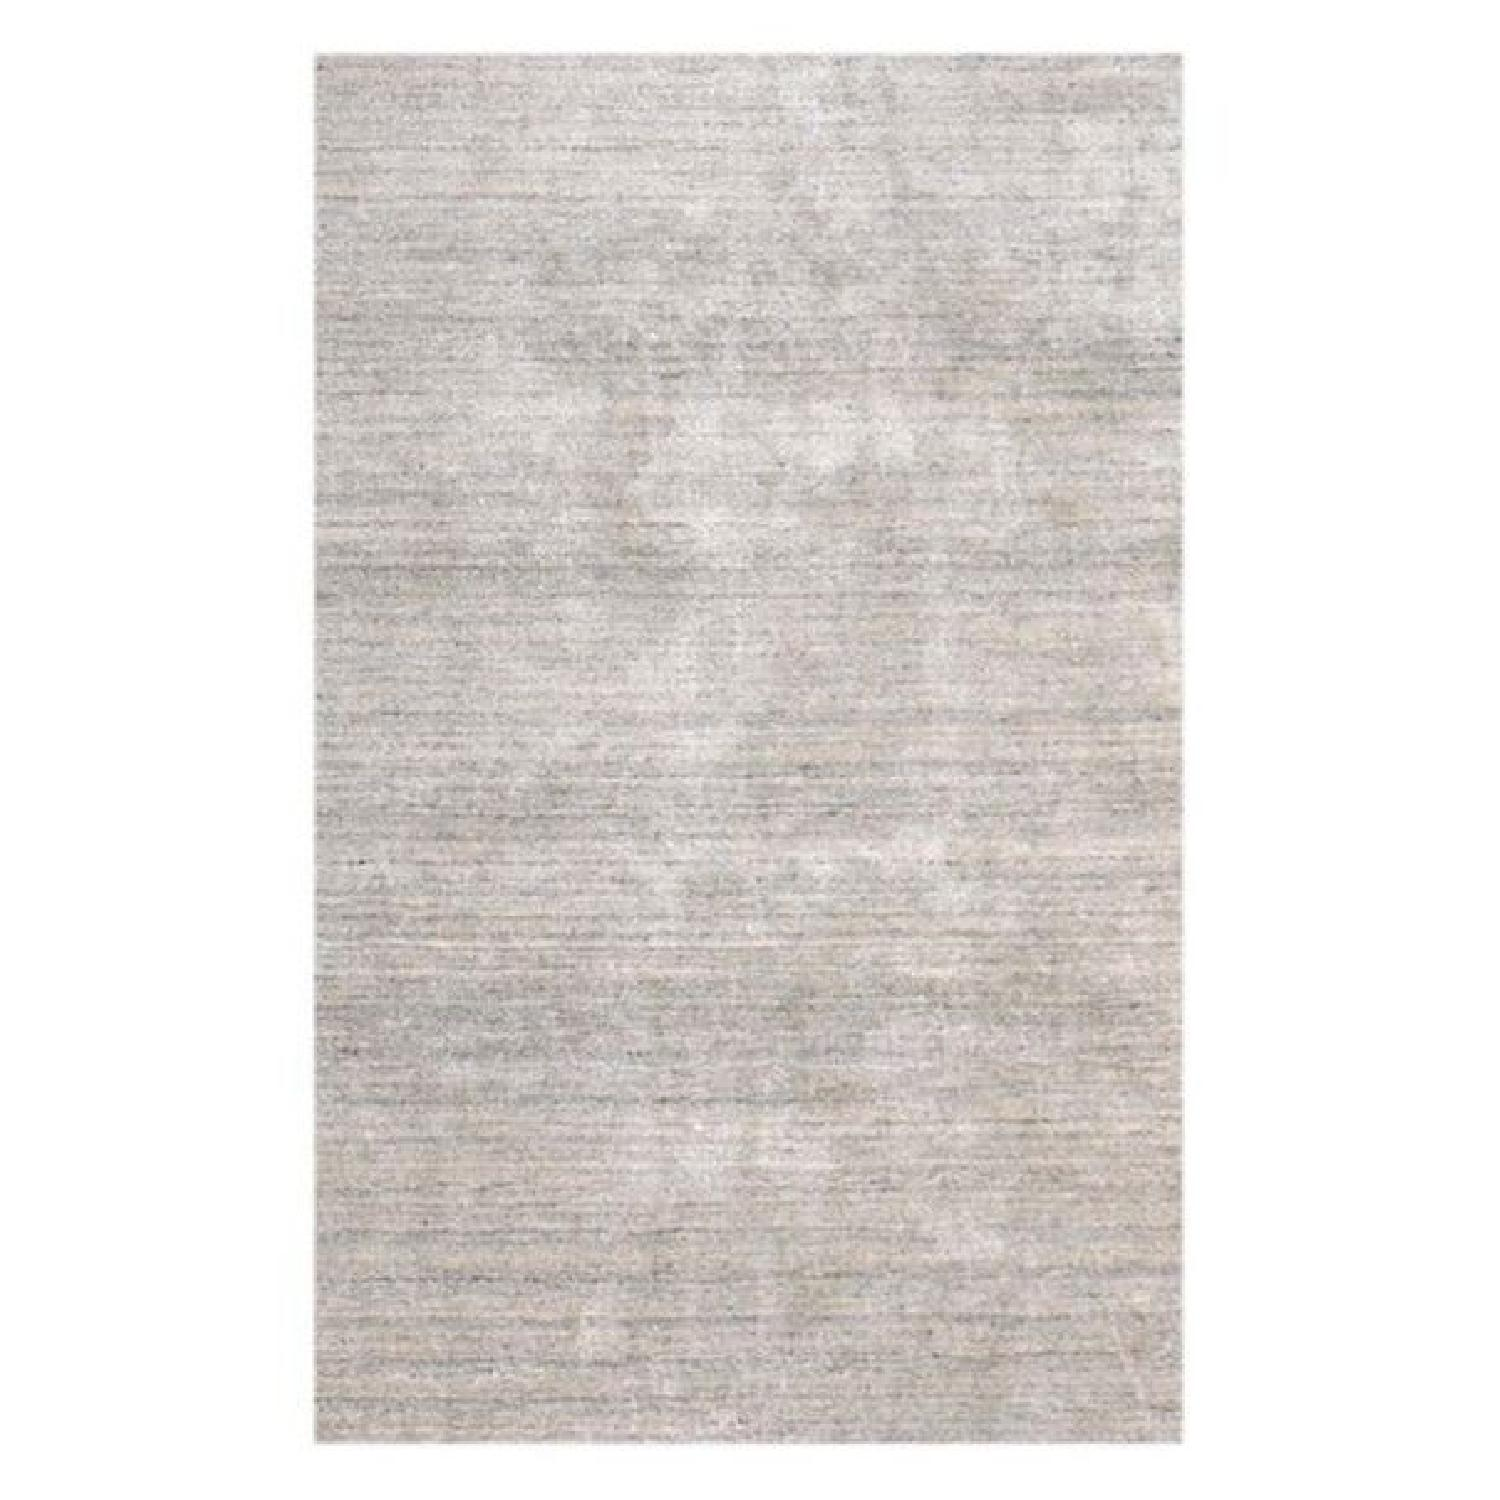 Mitchell Gold + Bob Williams Shimmer Rug in Parchment